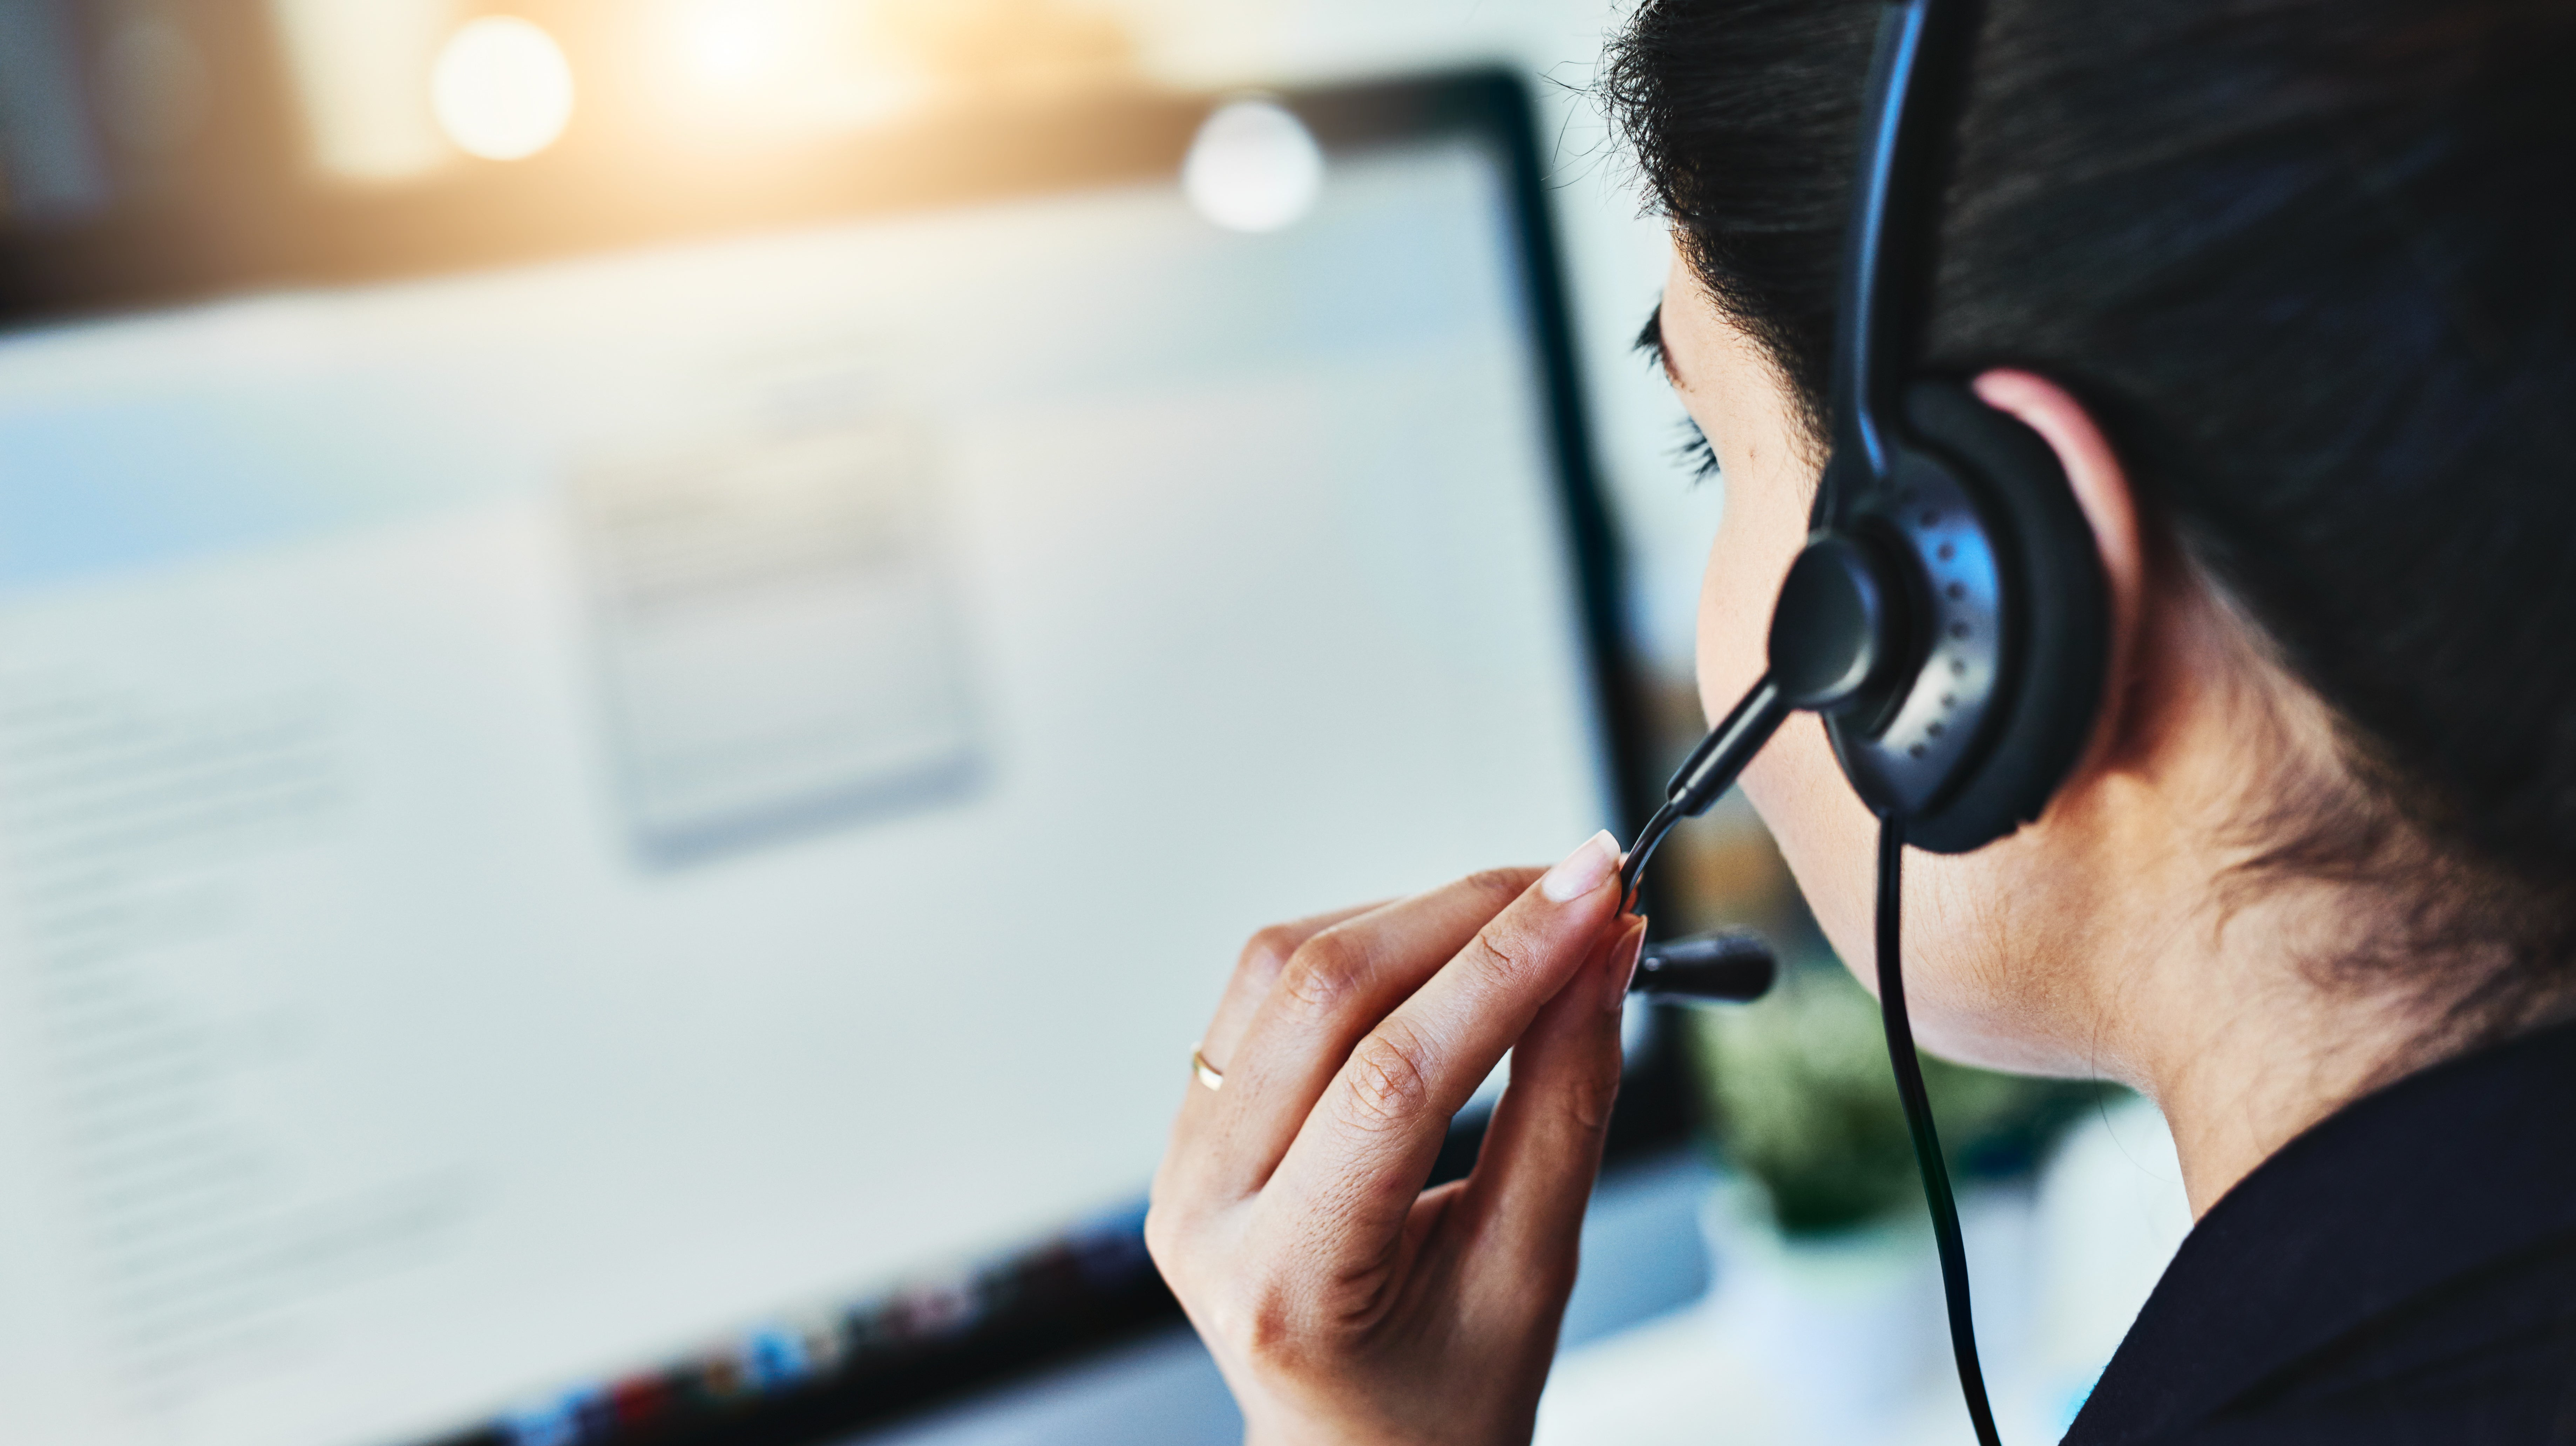 Customer Service Chat Services See Everything You Type (Whether You Send It Or Not)